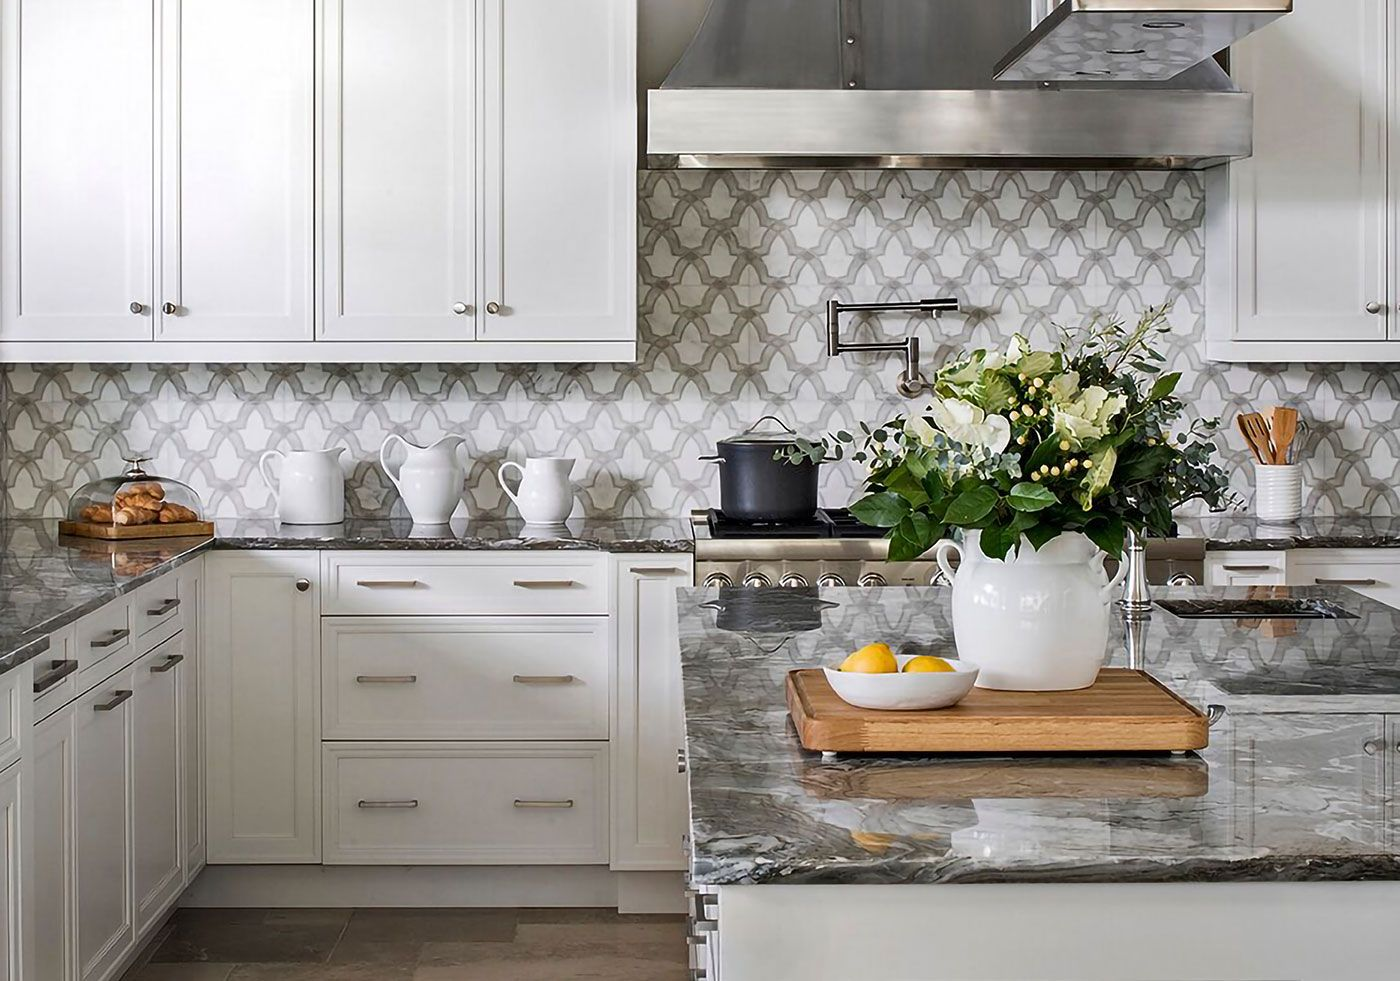 Bellew Tile Marble Boston Design Guide Cape Islands 5th Edition Page 120 In 2020 Kitchen Cabinet Colors Island Design Kitchen Cabinets